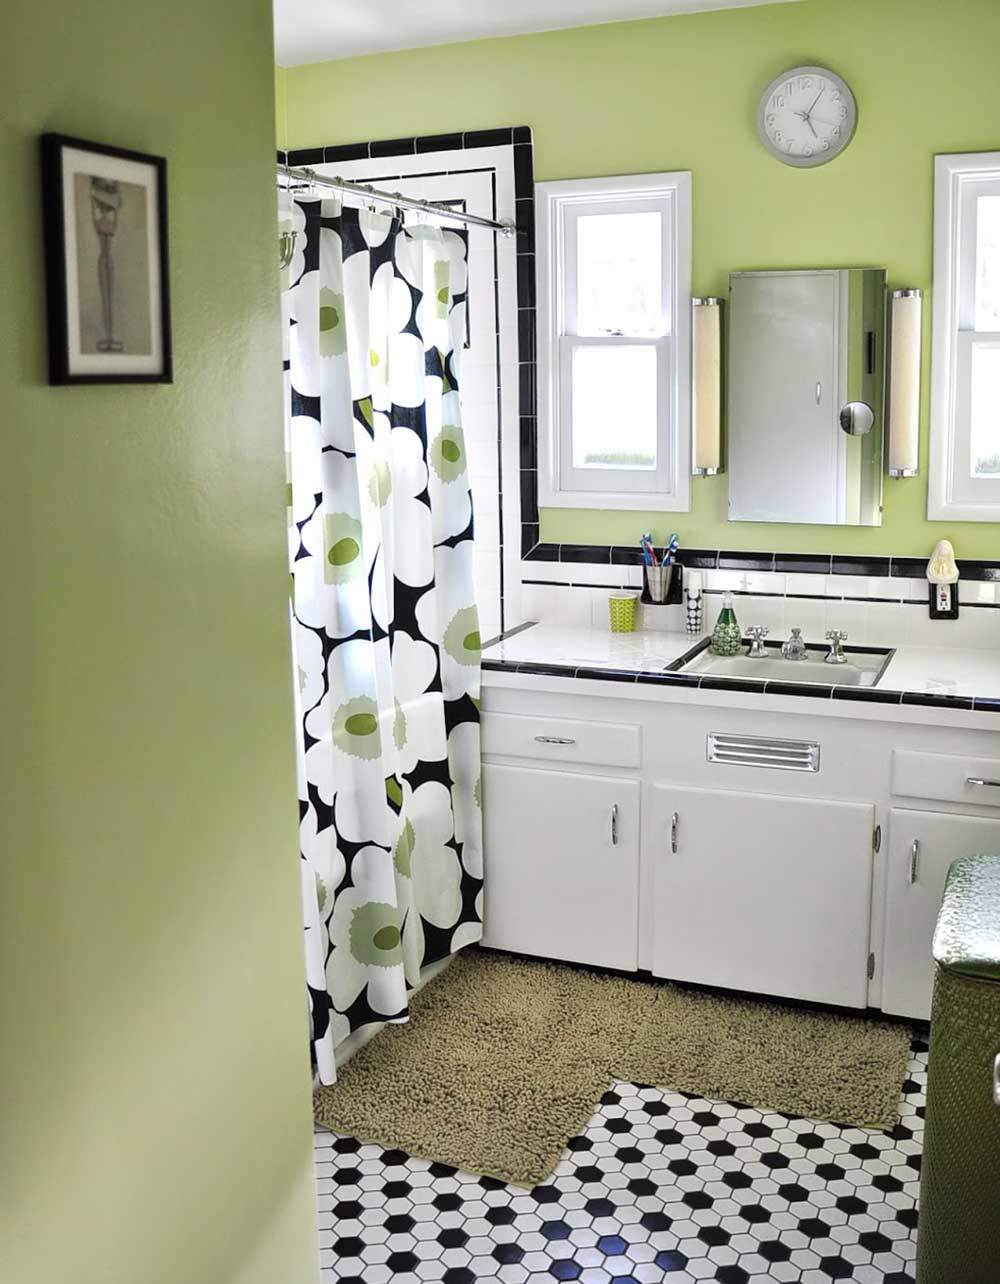 bathroom black and white tile black and white tile bathrooms done 6 different ways 21960